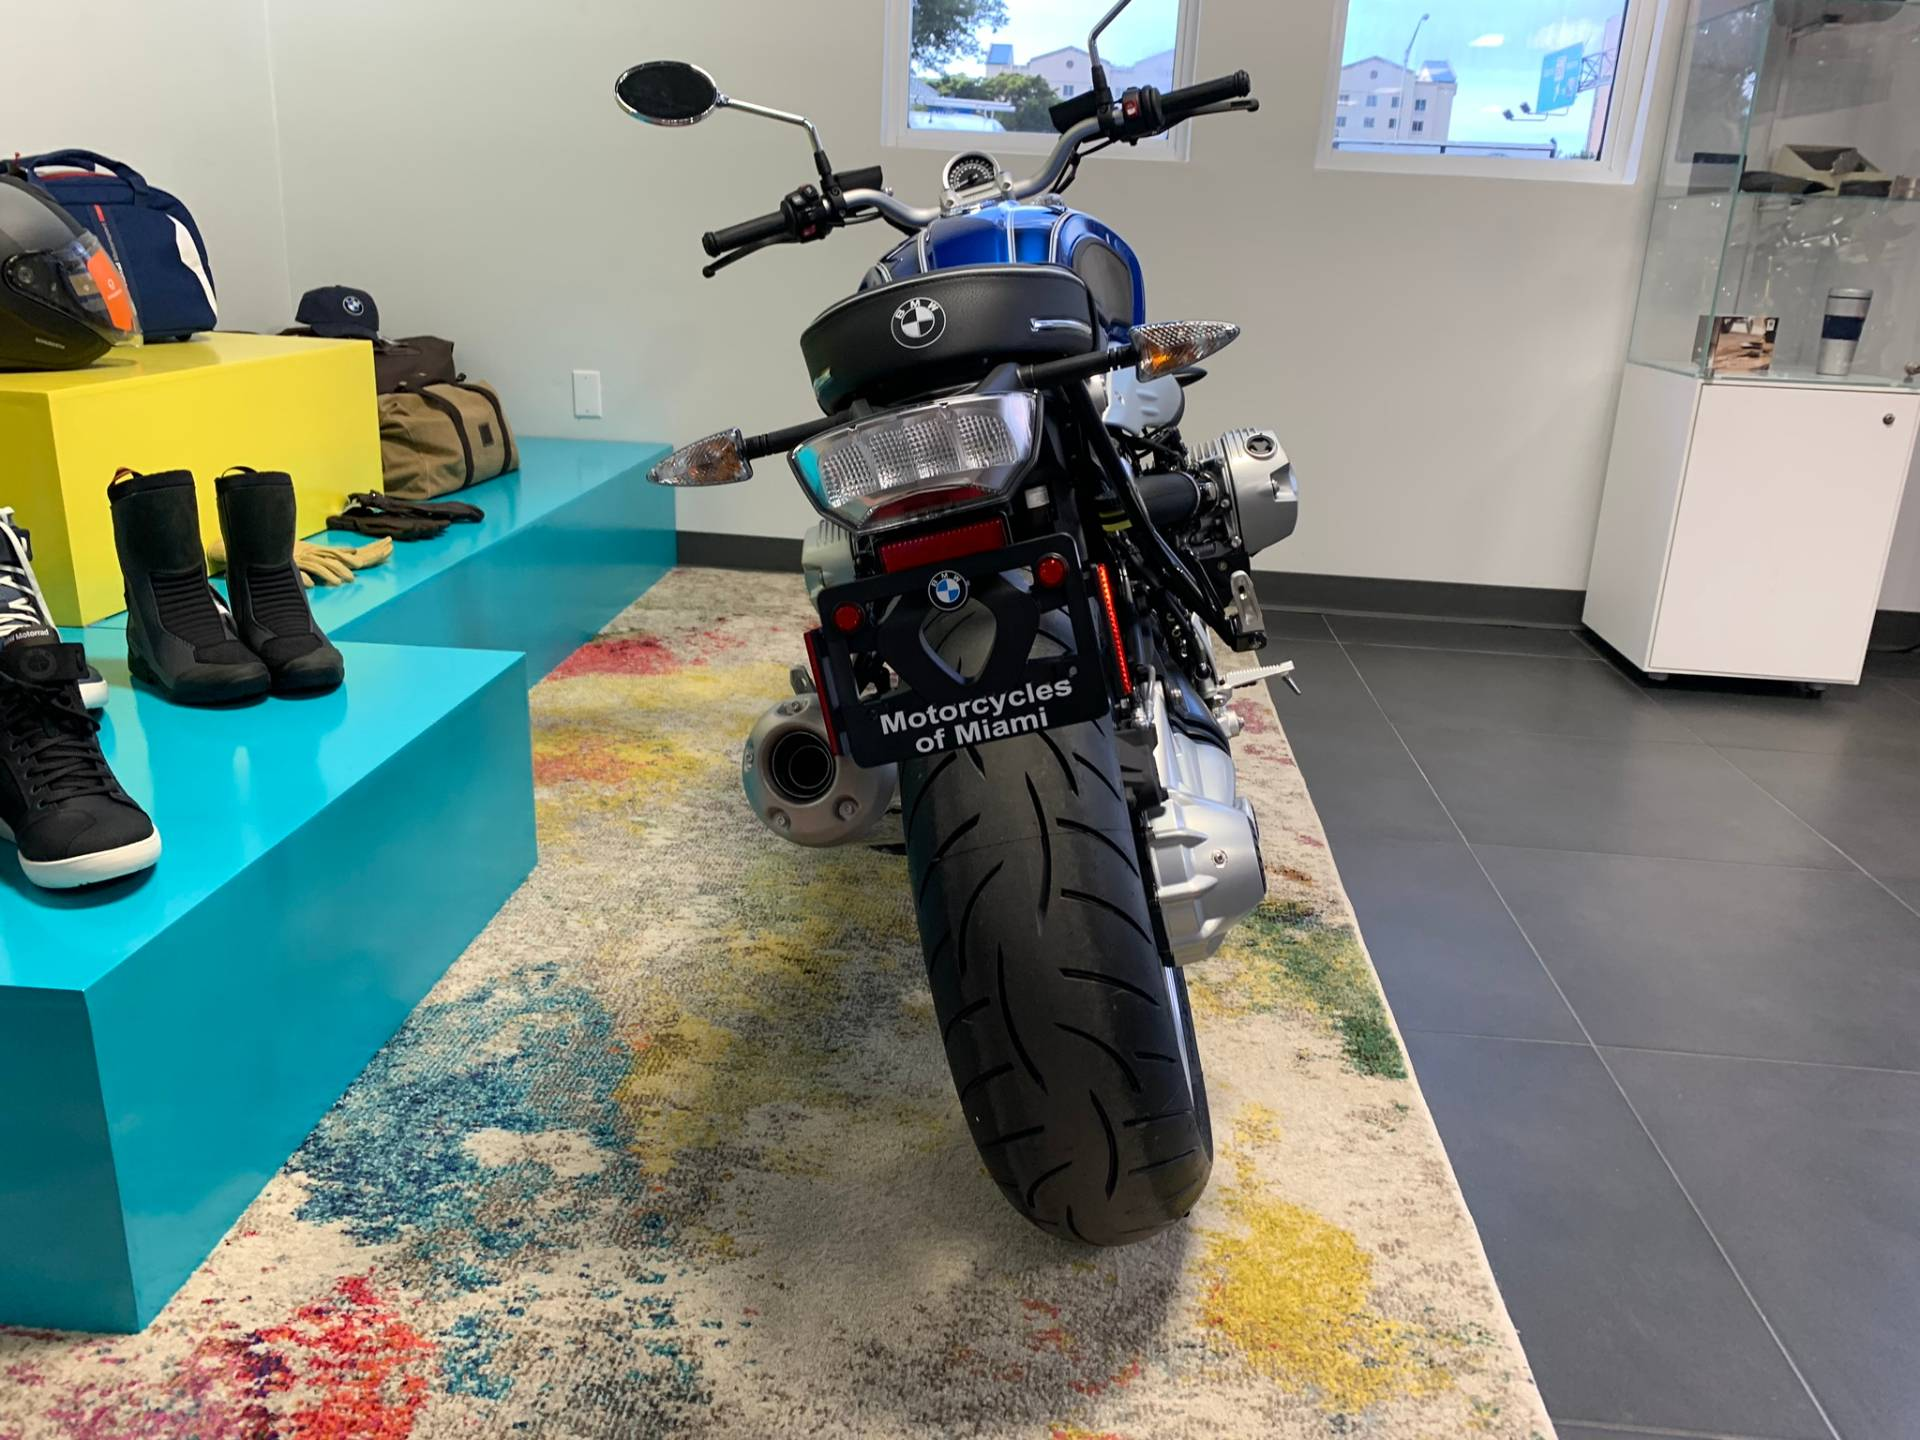 New 2020 2019 BMW R NineT for sale, BMW for sale, BMW Motorcycle Café Racer, new BMW Caffe, Cafe Racer, BMW. BMW Motorcycles of Miami, Motorcycles of Miami, Motorcycles Miami, New Motorcycles, Used Motorcycles, pre-owned. #BMWMotorcyclesOfMiami #MotorcyclesOfMiami. - Photo 14